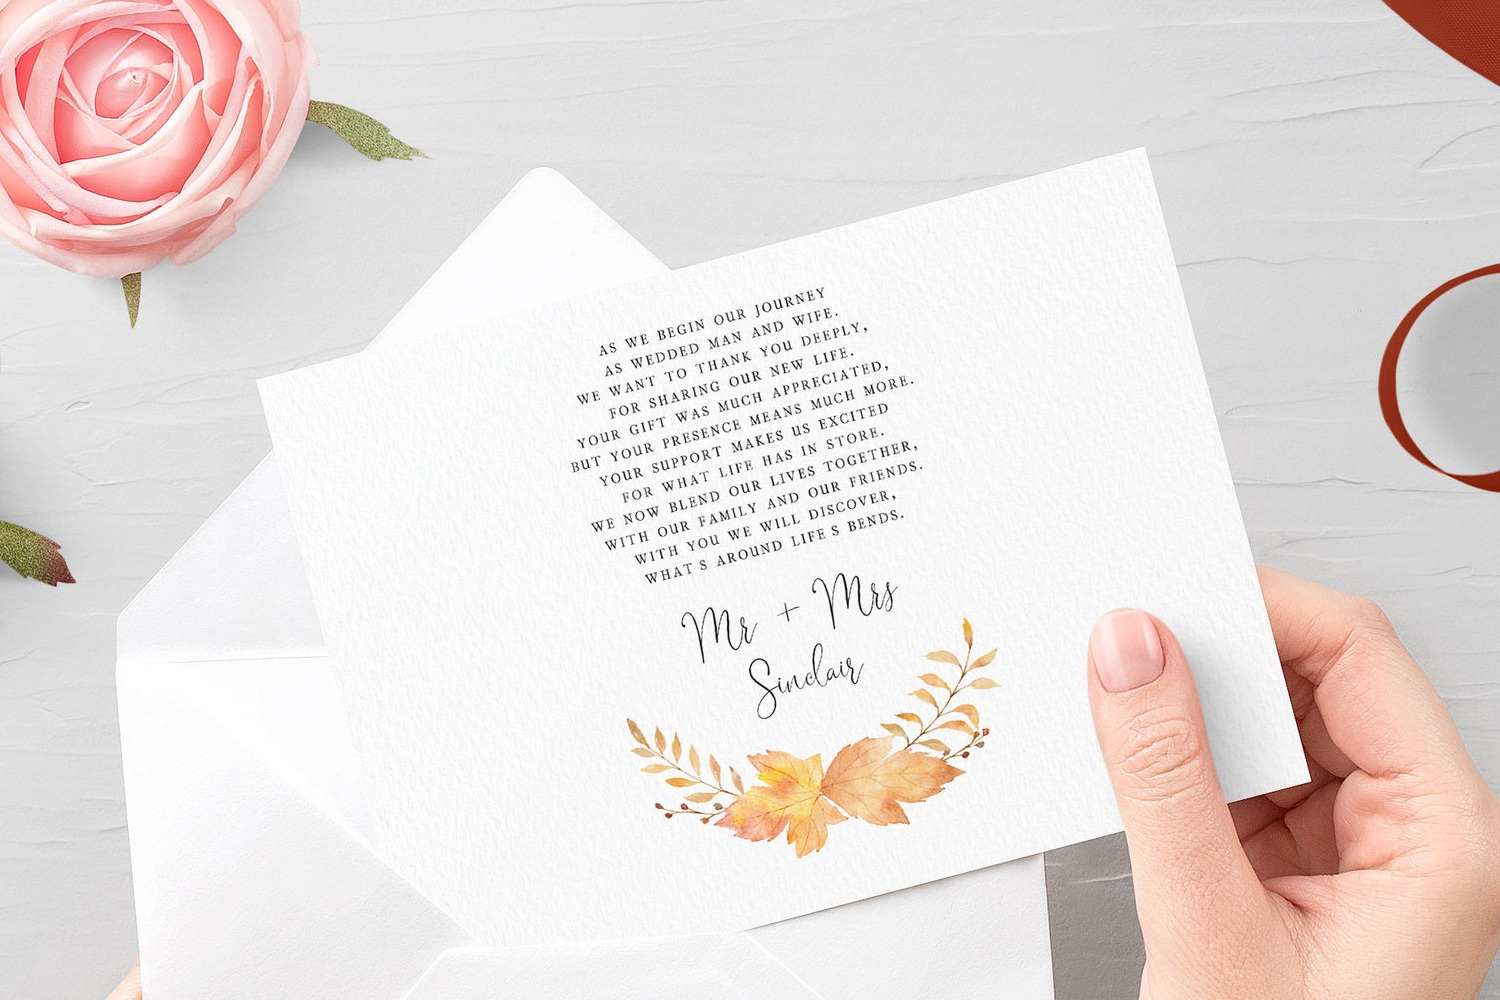 Double-sided printing - If you opt for double-sided printing then you can have a passage of your choosing printed as a message of thanks to your guests. You can use the pictured example or have something entirely of your own.